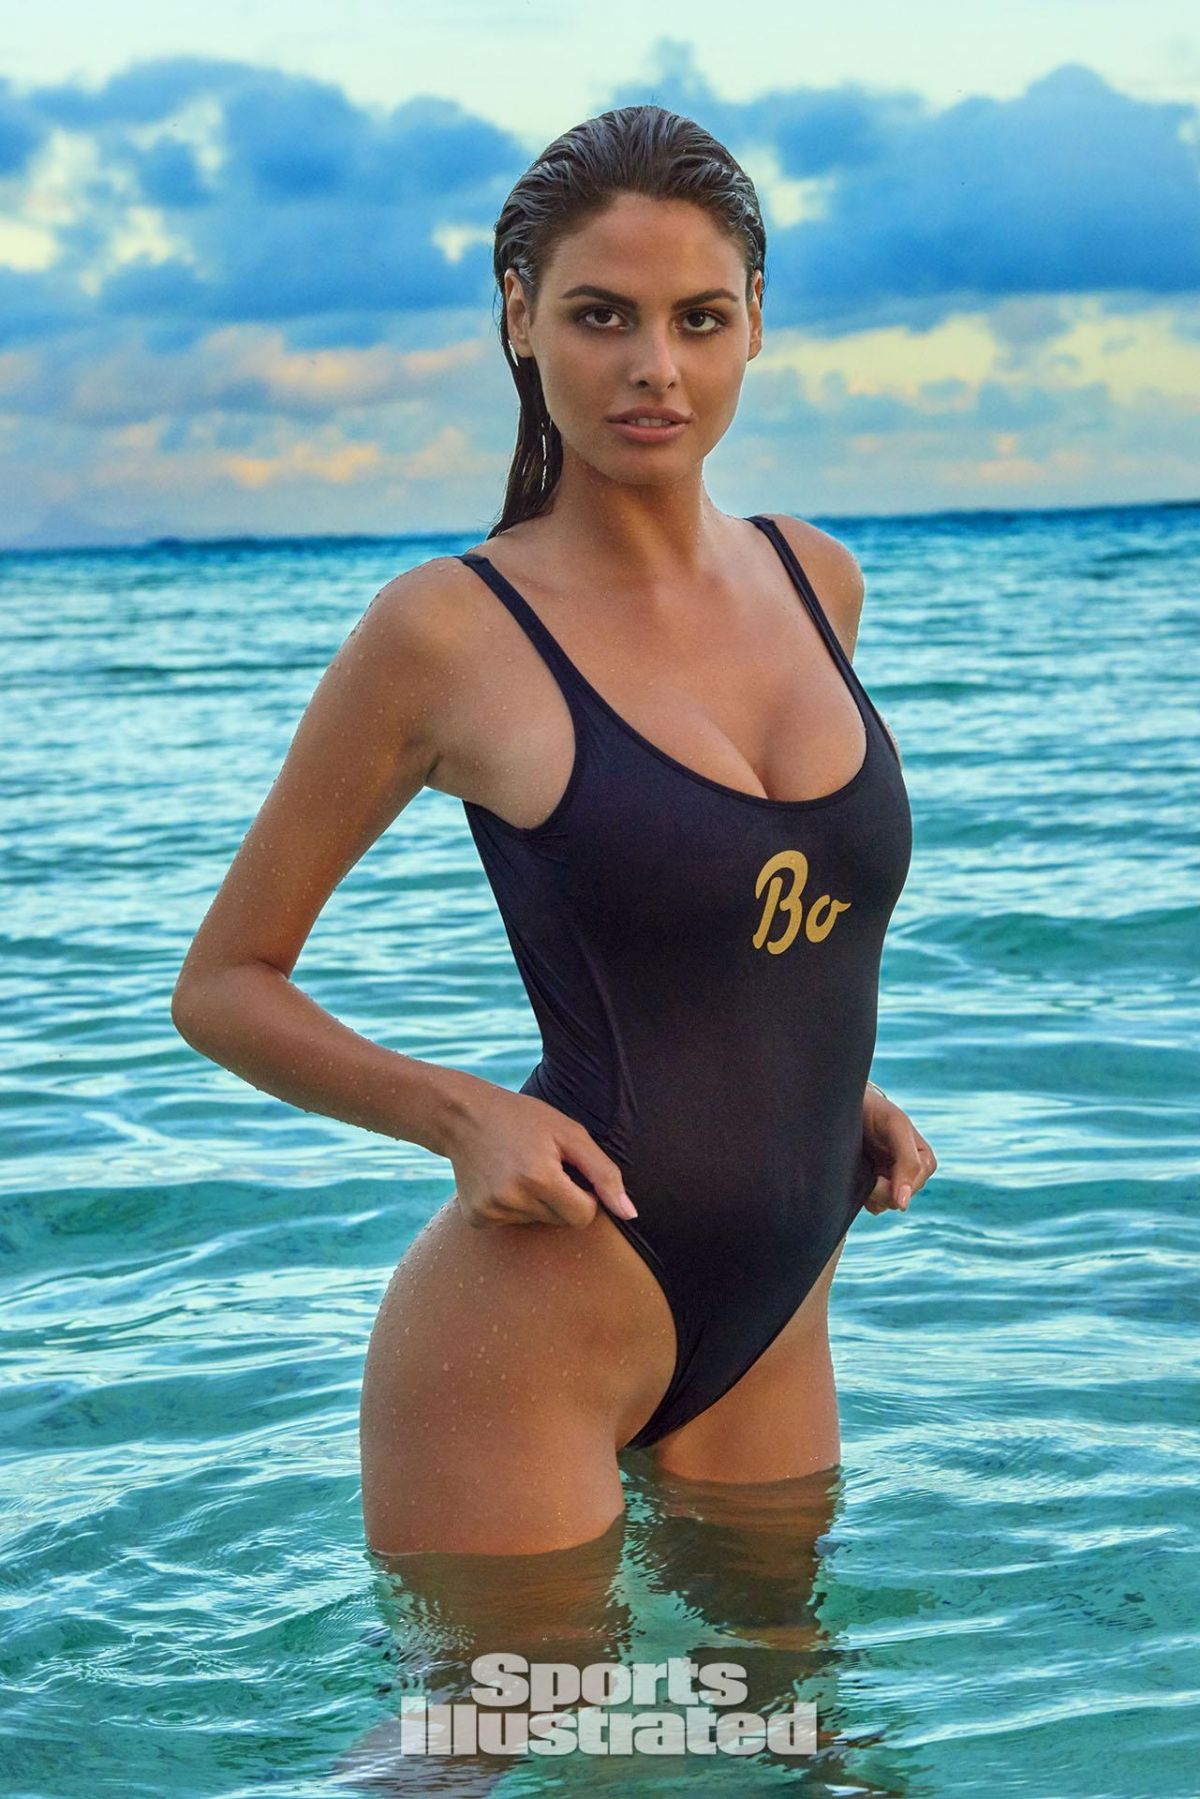 612ae4a111ad9 BO KRSMANOVIC in Sports Illustrated Swimsuit Issue 2016 - HawtCelebs